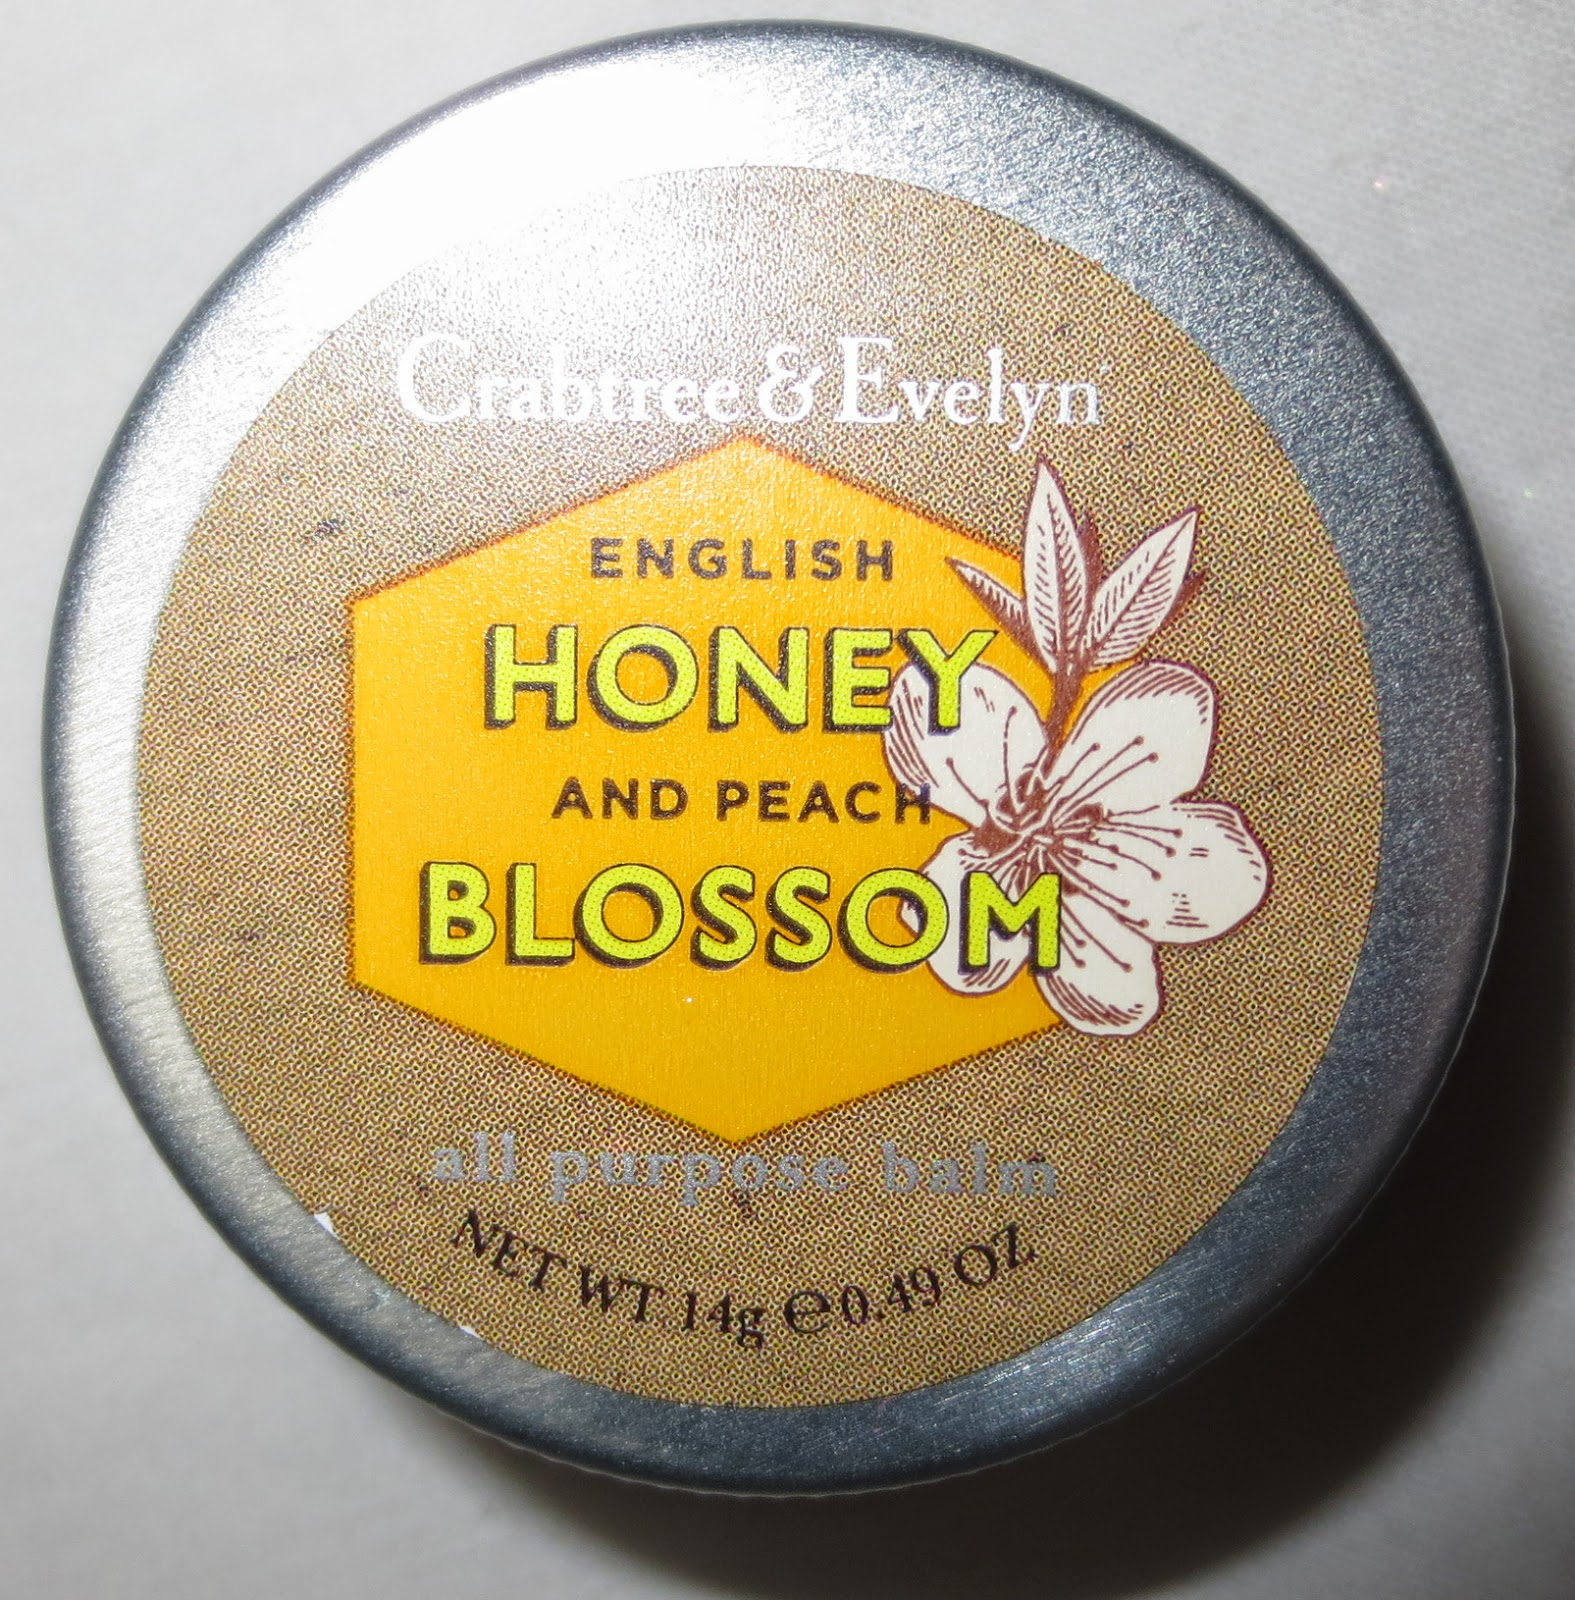 Crabtree & Evelyn English Honey & Peach Blossom All Purpose Balm